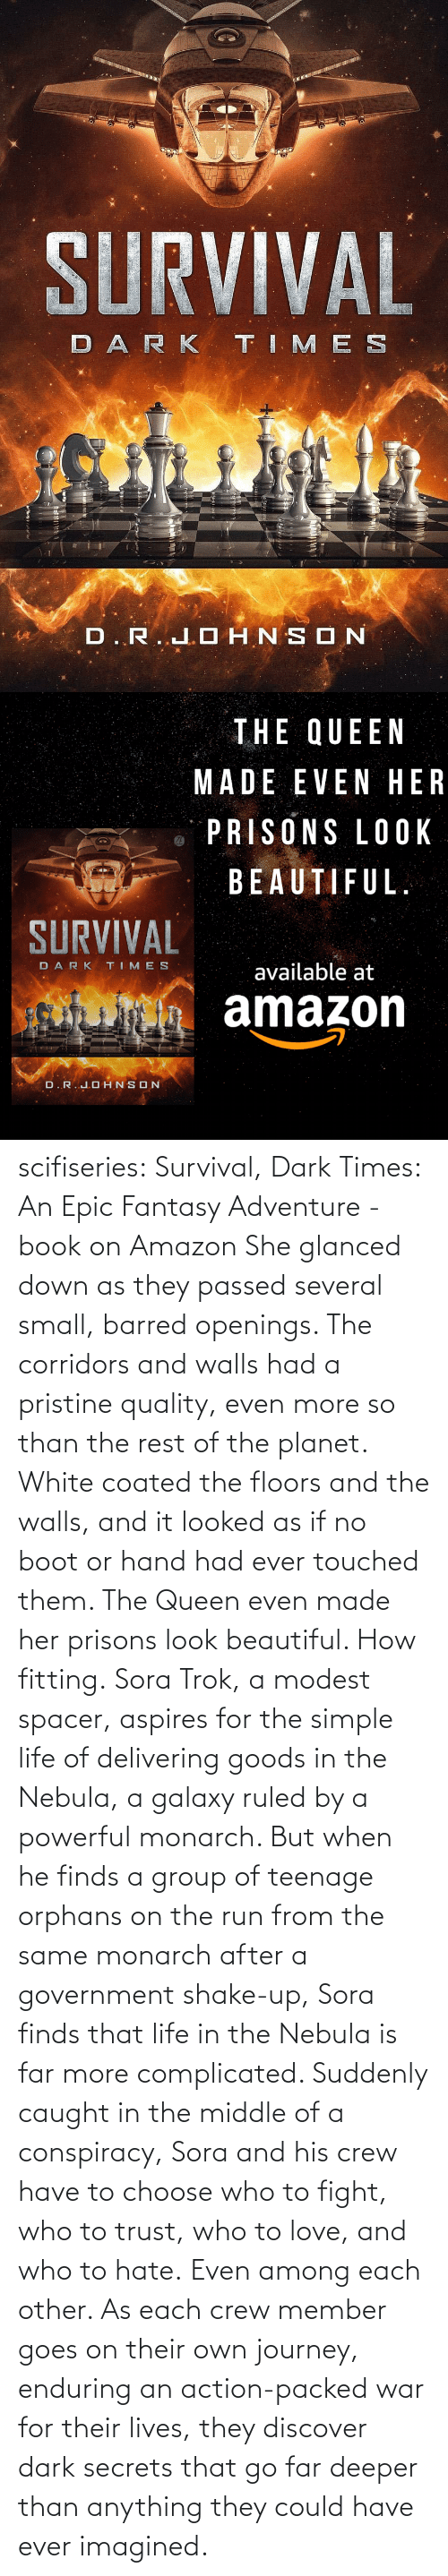 the queen: scifiseries: Survival, Dark Times: An Epic Fantasy Adventure - book on Amazon  She glanced down as they  passed several small, barred openings. The corridors and walls had a  pristine quality, even more so than the rest of the planet. White coated  the floors and the walls, and it looked as if no boot or hand had ever  touched them.  The Queen even made her prisons look beautiful.  How fitting. Sora  Trok, a modest spacer, aspires for the simple life of delivering goods  in the Nebula, a galaxy ruled by a powerful monarch. But when he finds a  group of teenage orphans on the run from the same monarch after a  government shake-up, Sora finds that life in the Nebula is far more complicated.  Suddenly  caught in the middle of a conspiracy, Sora and his crew have to choose  who to fight, who to trust, who to love, and who to hate. Even among each other.  As  each crew member goes on their own journey, enduring an action-packed  war for their lives, they discover dark secrets that go far deeper than  anything they could have ever imagined.